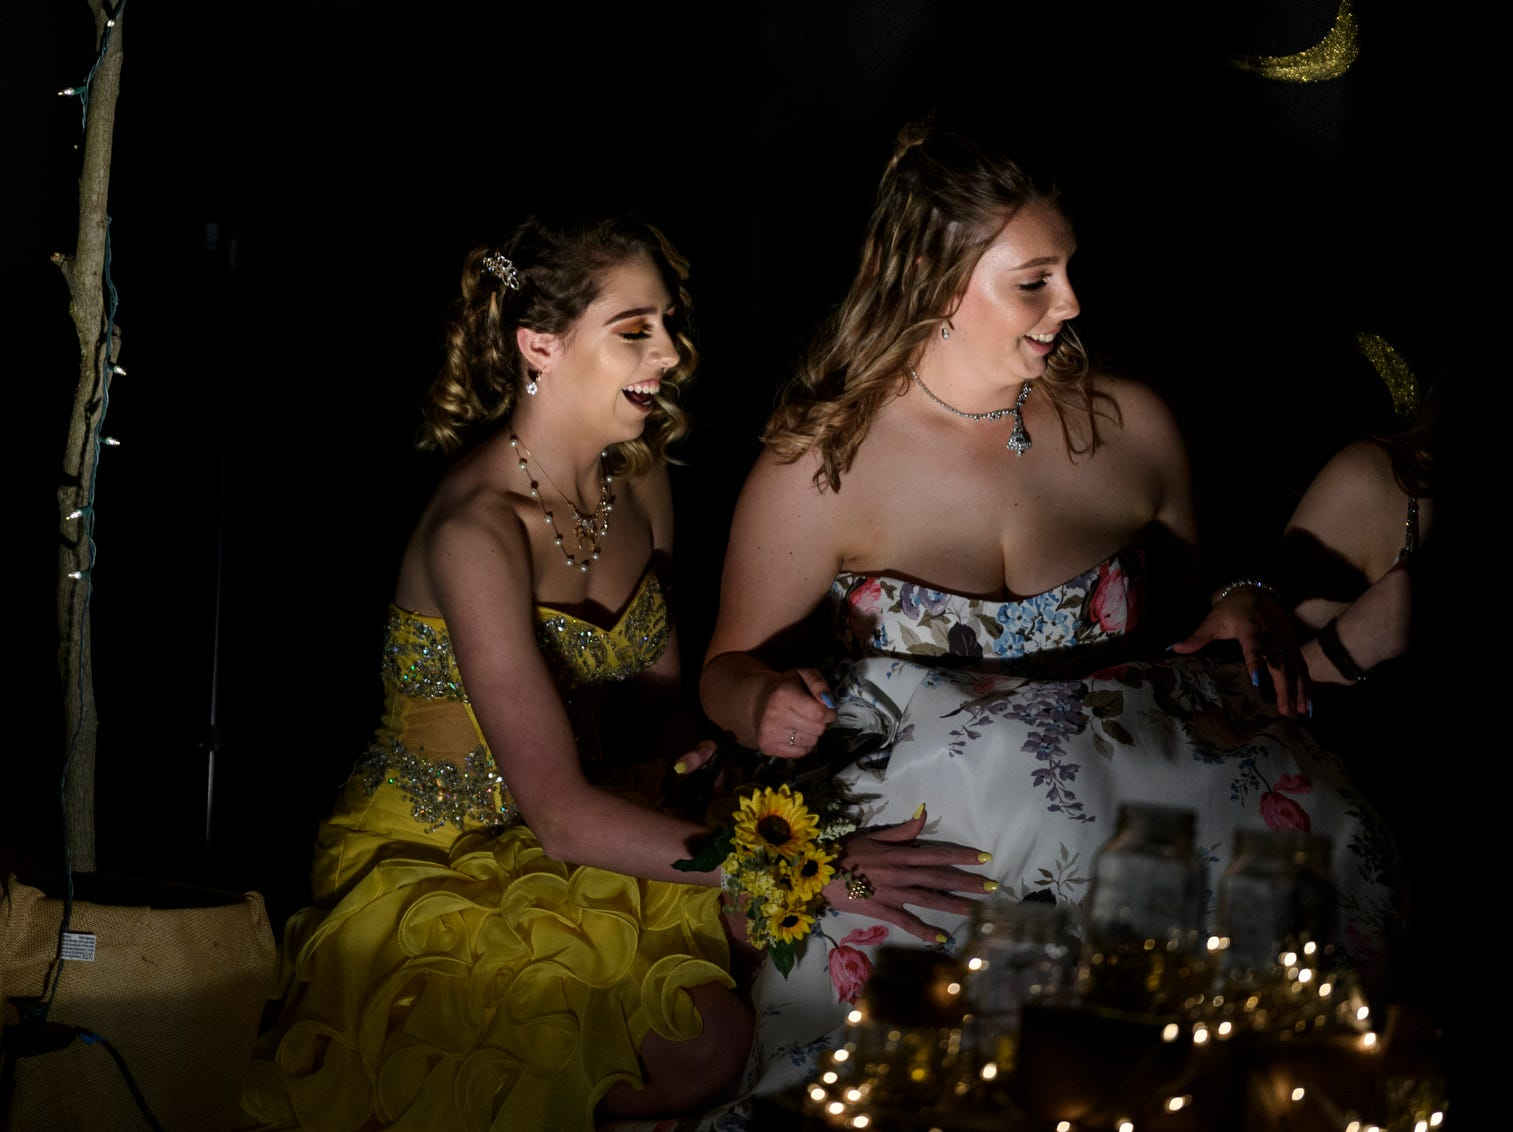 """Bailey Roby, left, and Olivia Gilham, right, laugh as they take a moment to situate themselves for a photo with friends in front of a banner during Central High School's """"Uptown Night"""" themed prom held at the Vanderburgh 4-H Center auditorium in Evansville, Ind., Saturday, April 27, 2019."""